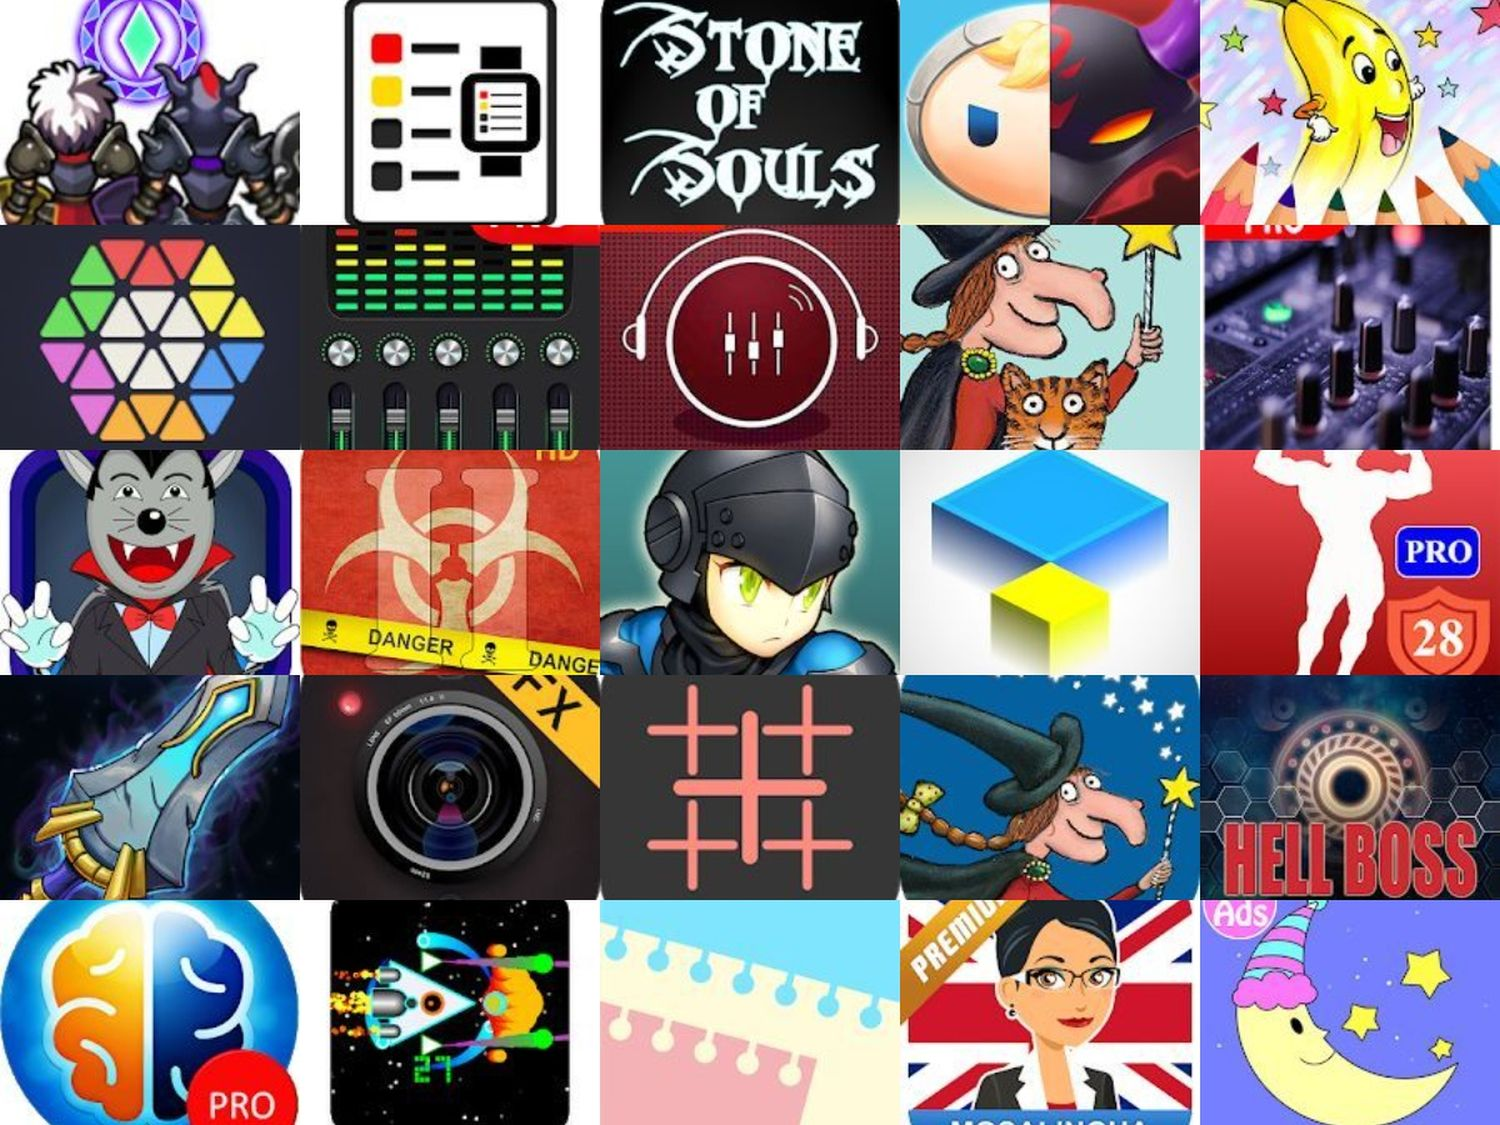 apps 01.11.2020